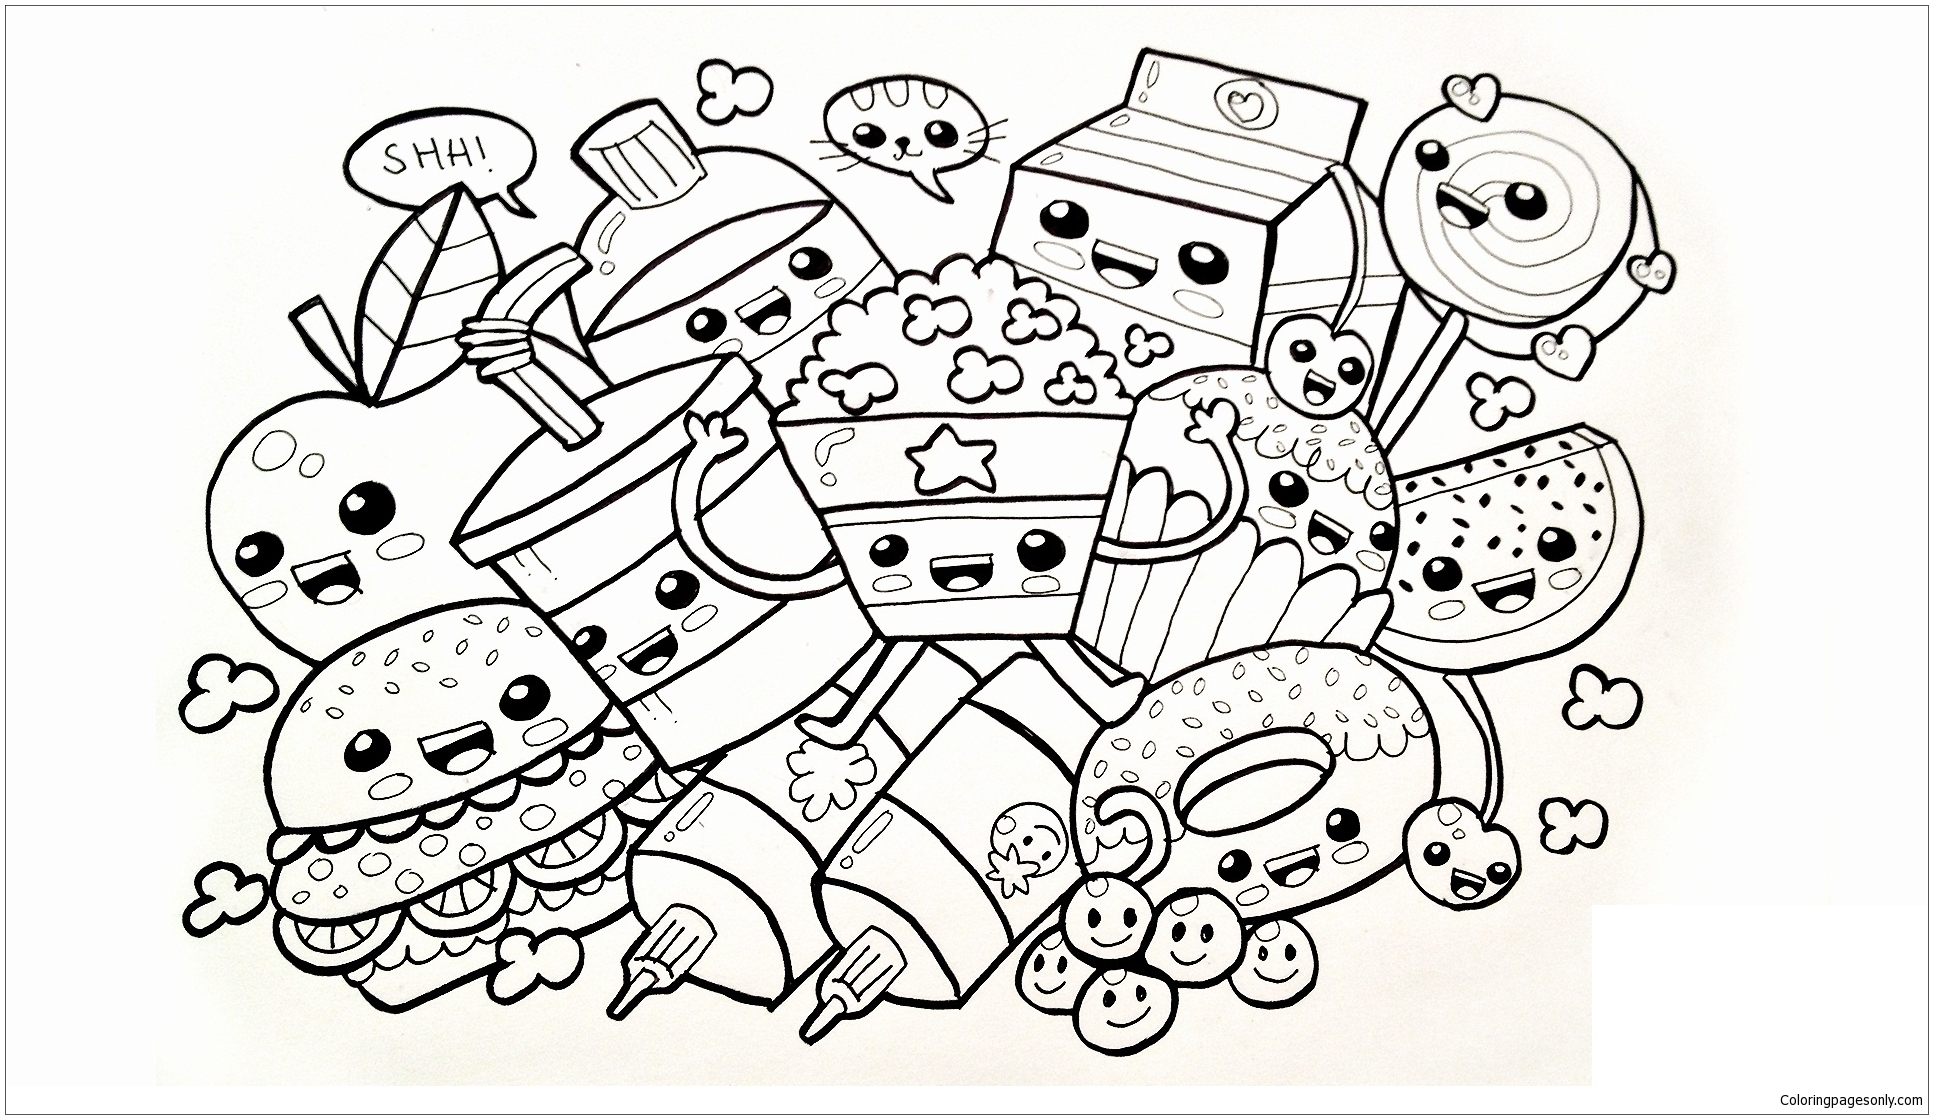 Shopkins - Image 4 Coloring Page - Free Coloring Pages Online